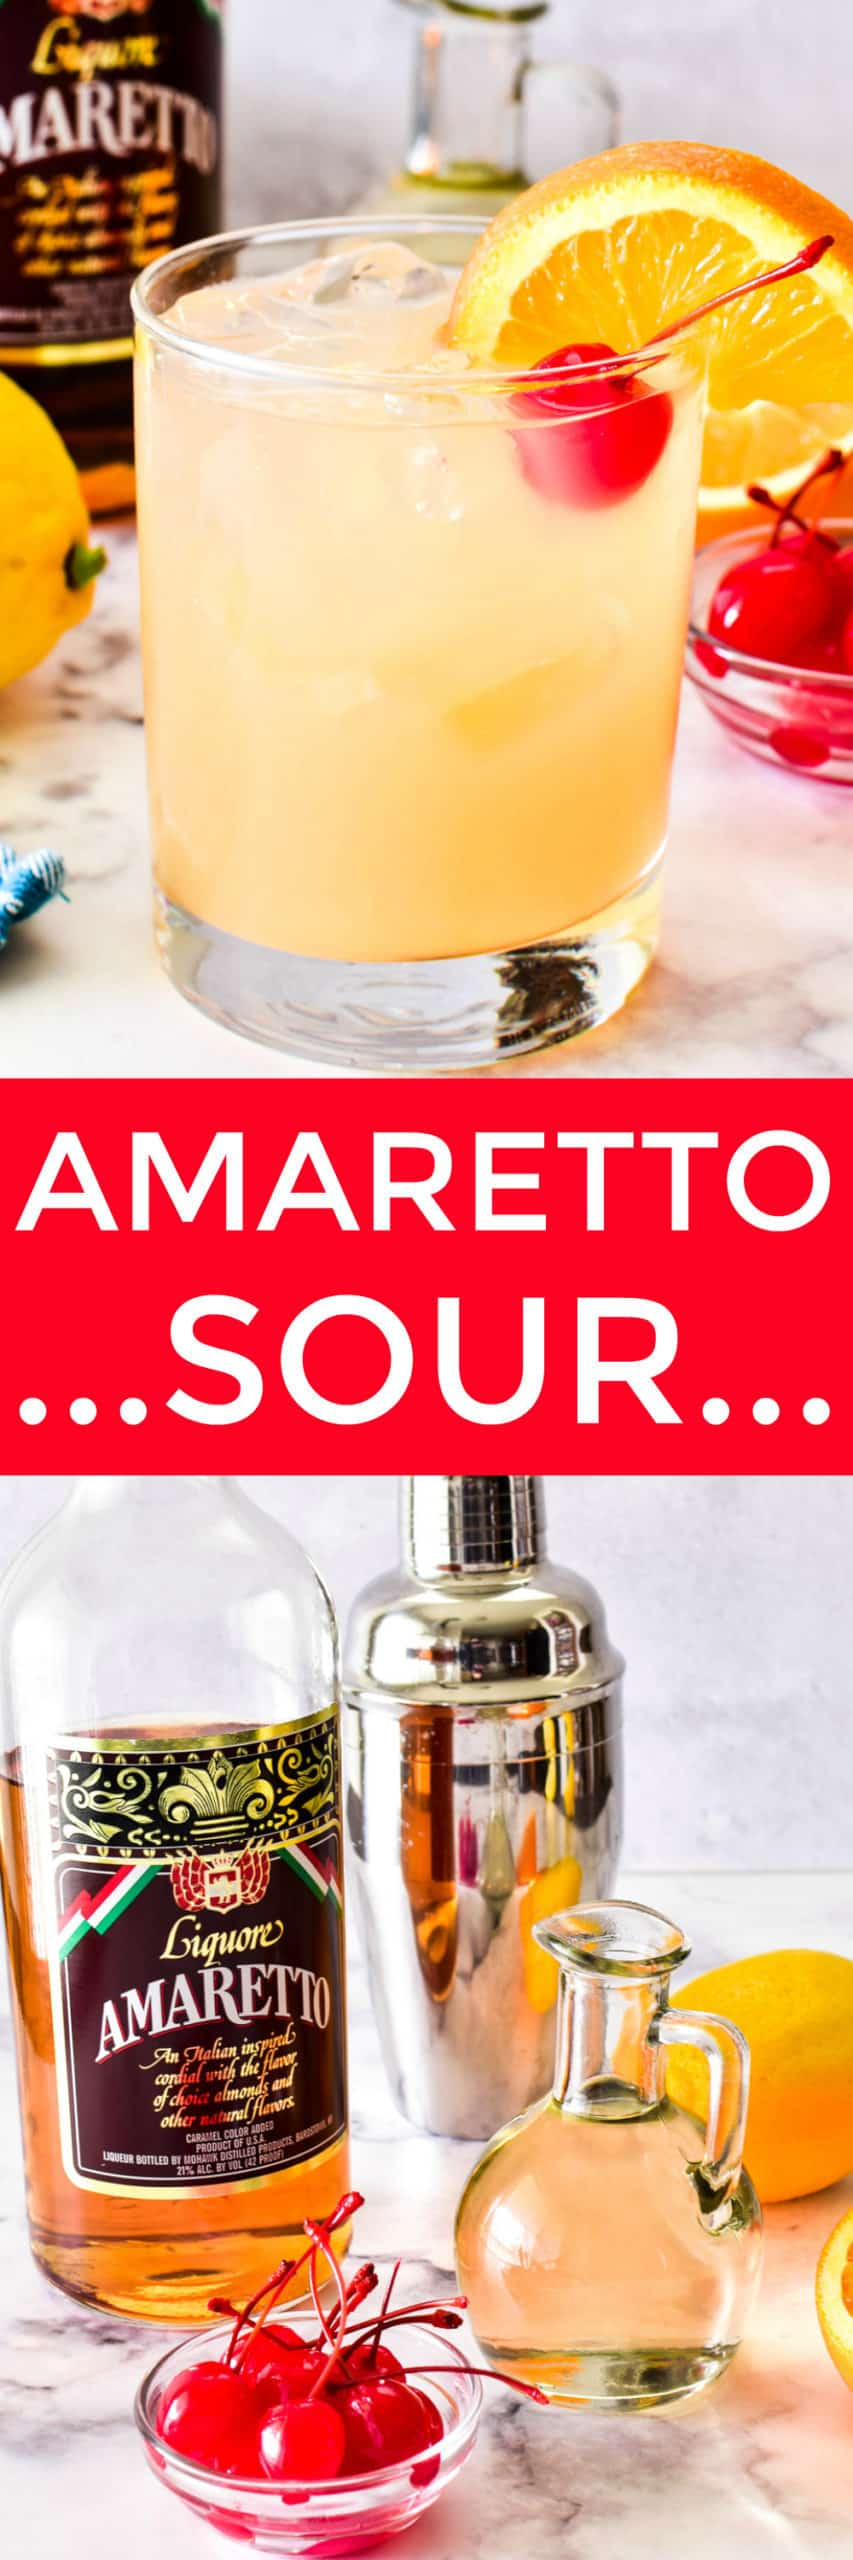 Collage image of Amaretto Sour with ingredients